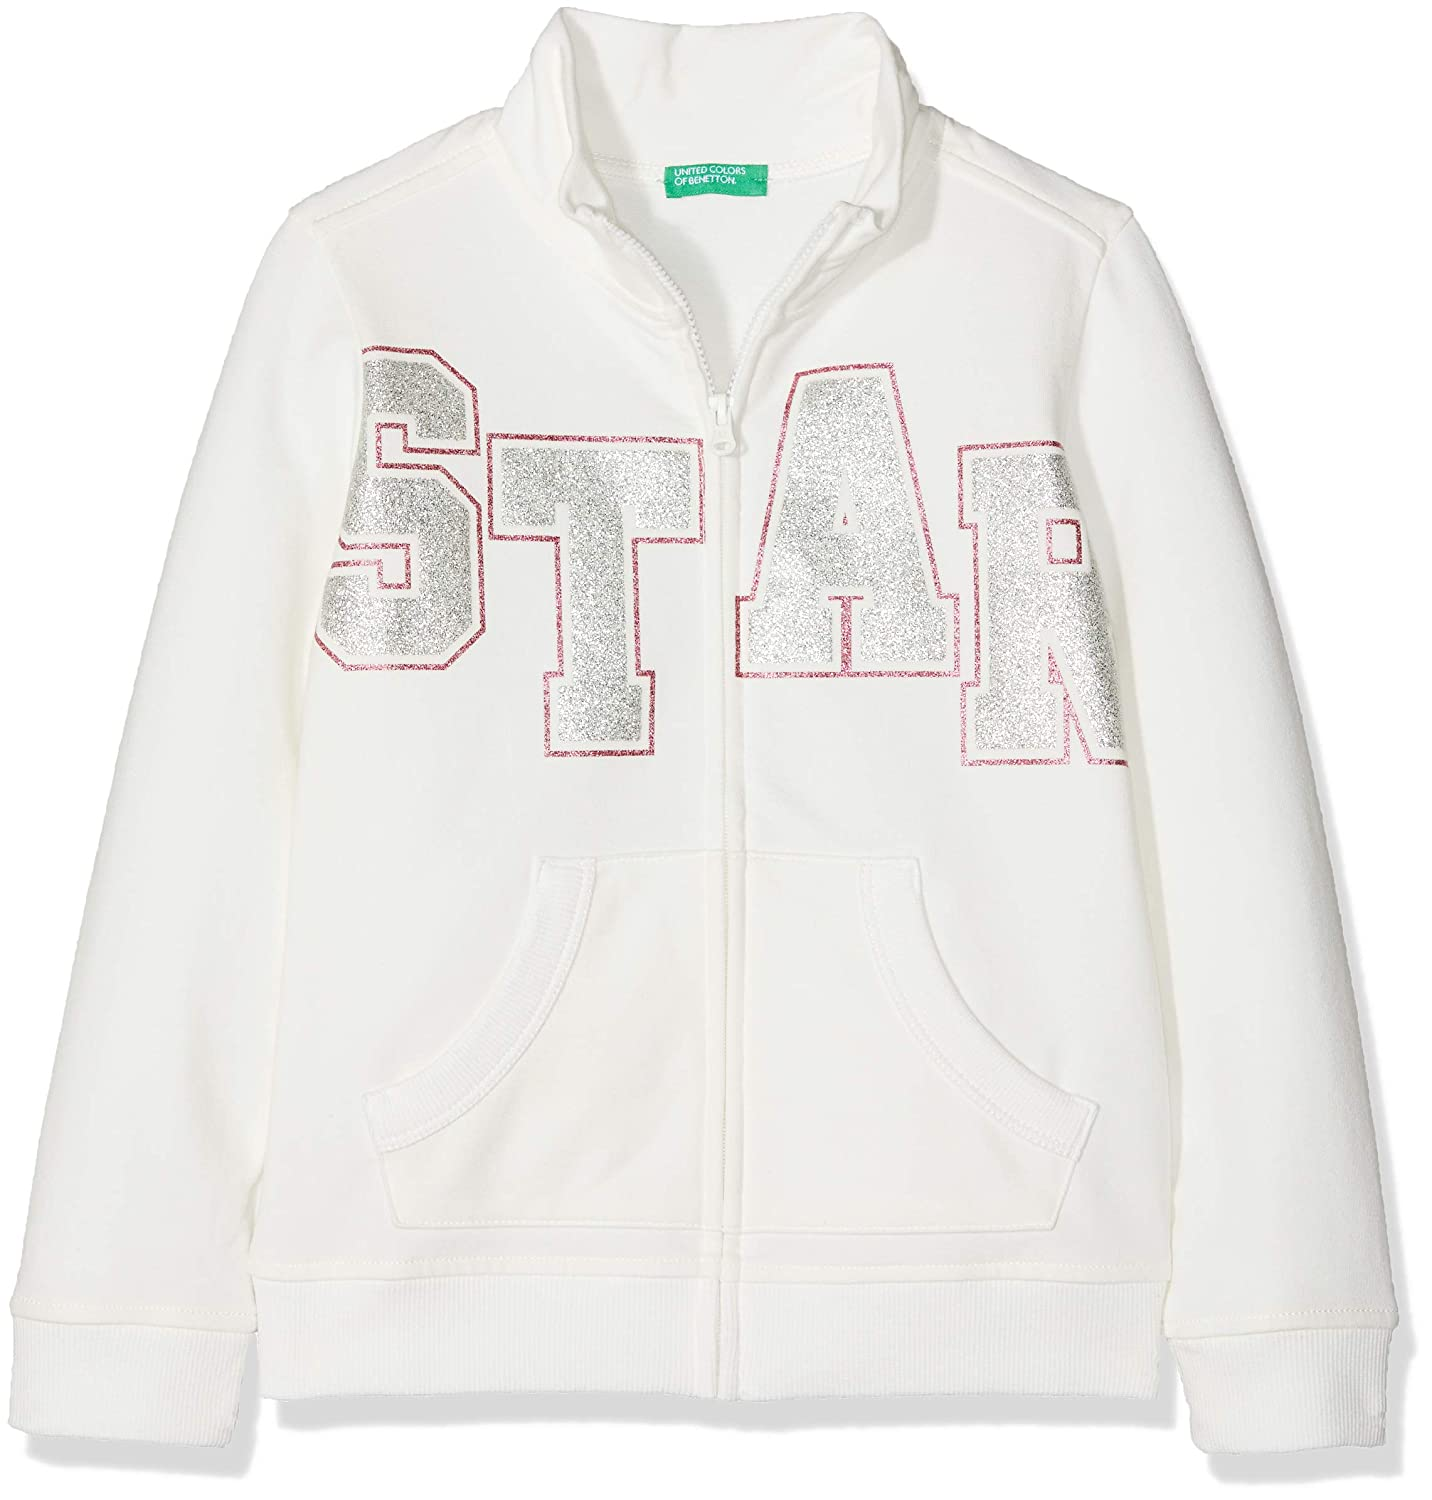 United Colors of Benetton Jacket, Giacca Bambina 3CY4C5444